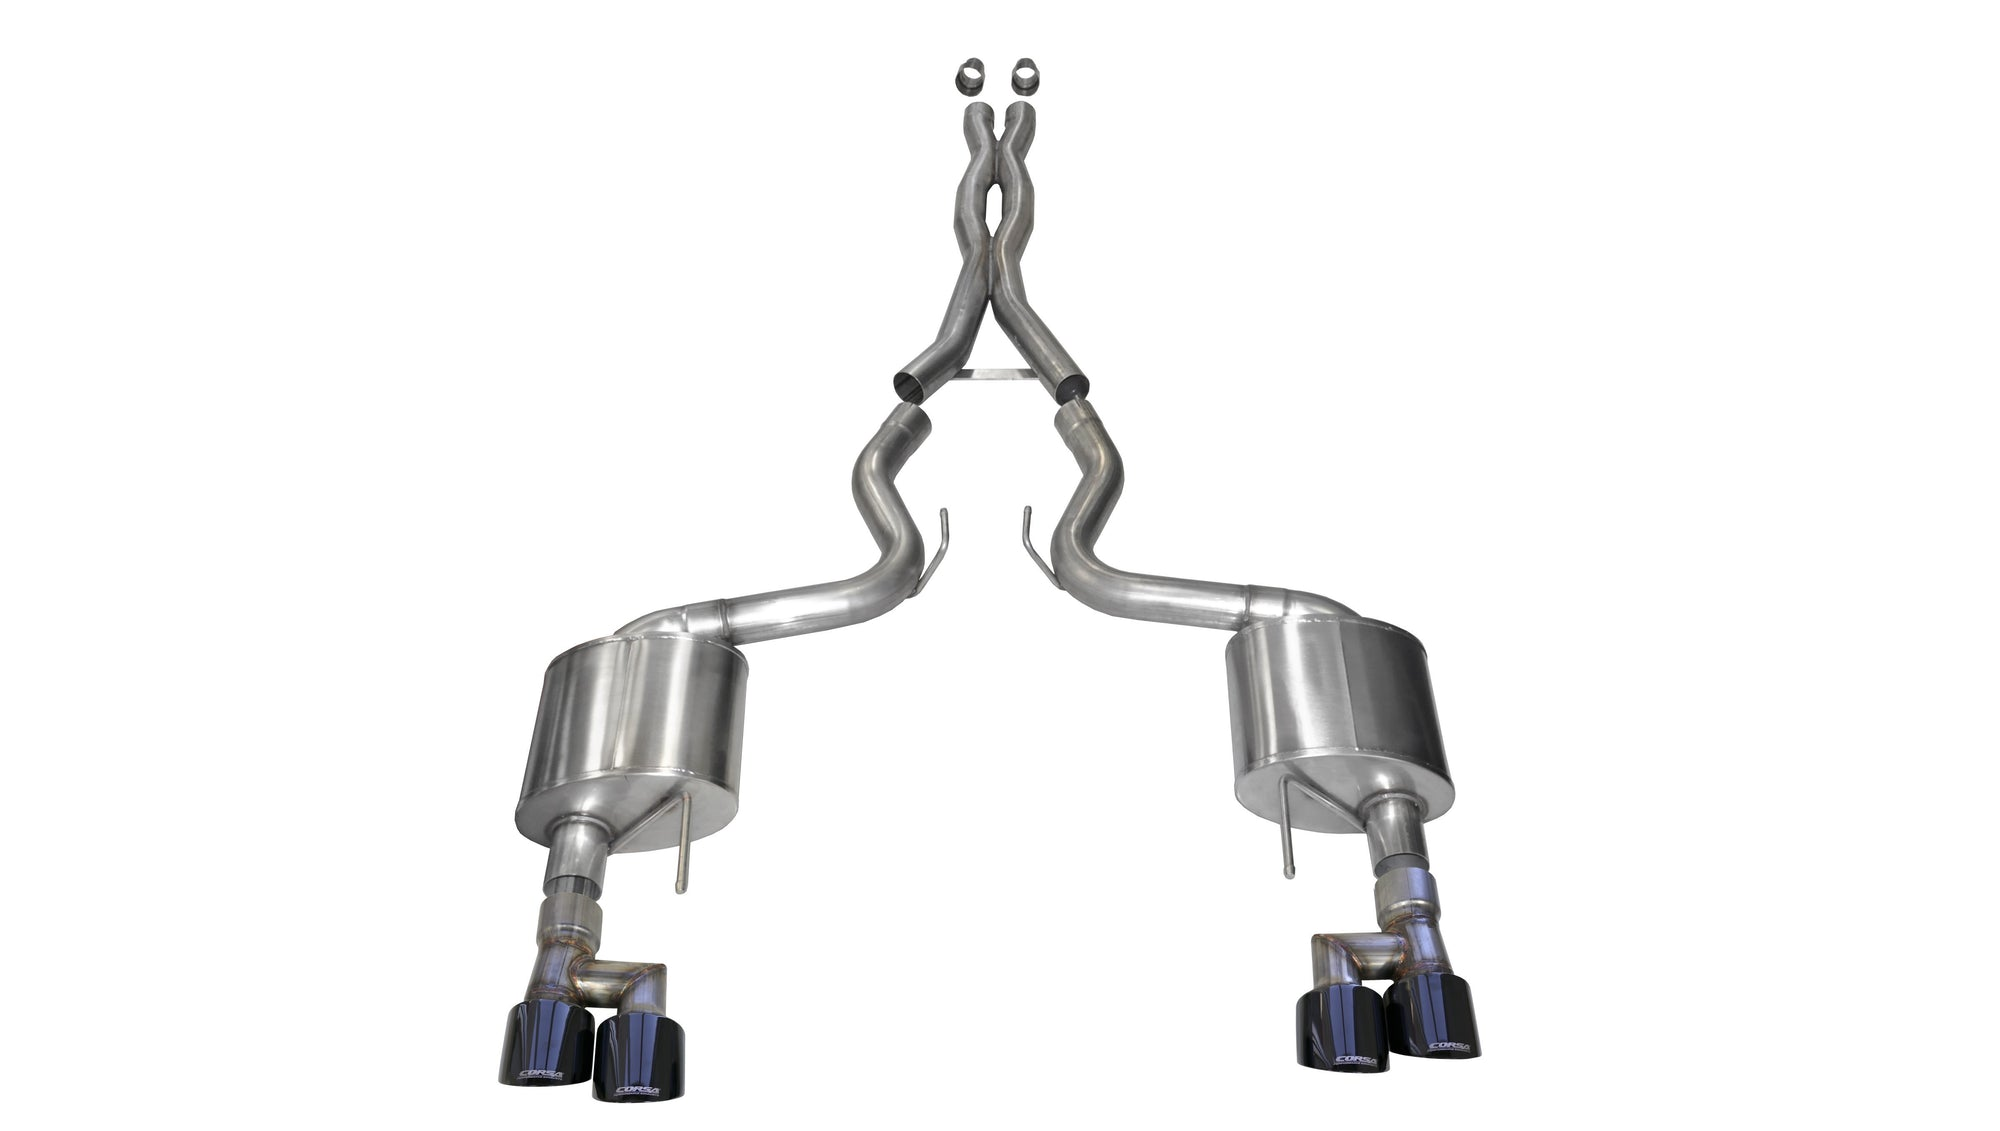 "CORSA PERFORMANCE Cat-Back Exhaust Polished / Sport / Dual Rear - Twin 4.0in 2018-2019 Ford Mustang GT, 5.0L V8, 3.0"" Cat-Back Exhaust System with Twin 4.0"" Tips (21042) Sport Sound Level"